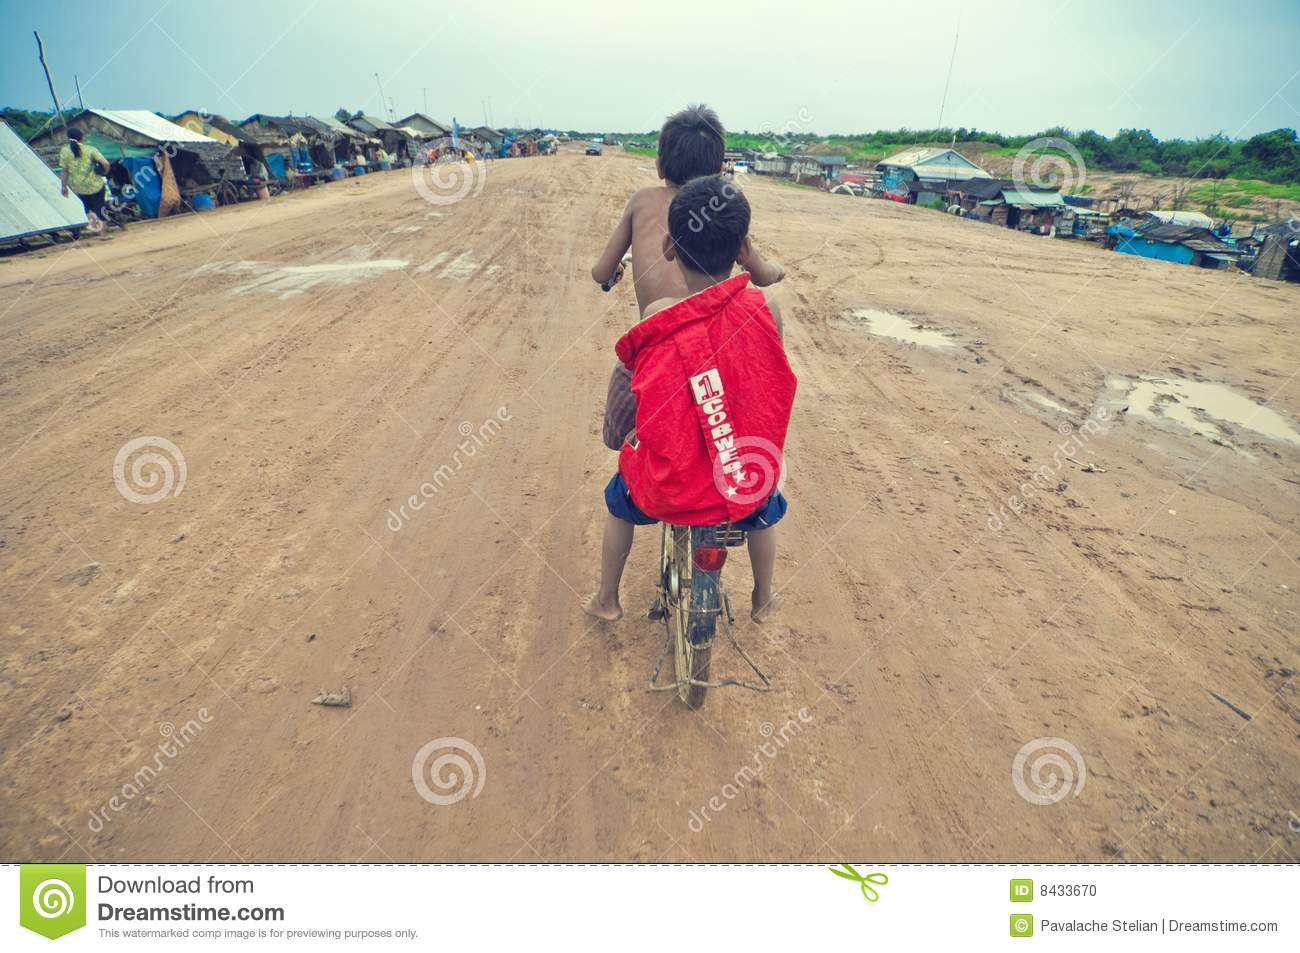 Poor cambodian kids racing with old bicycle